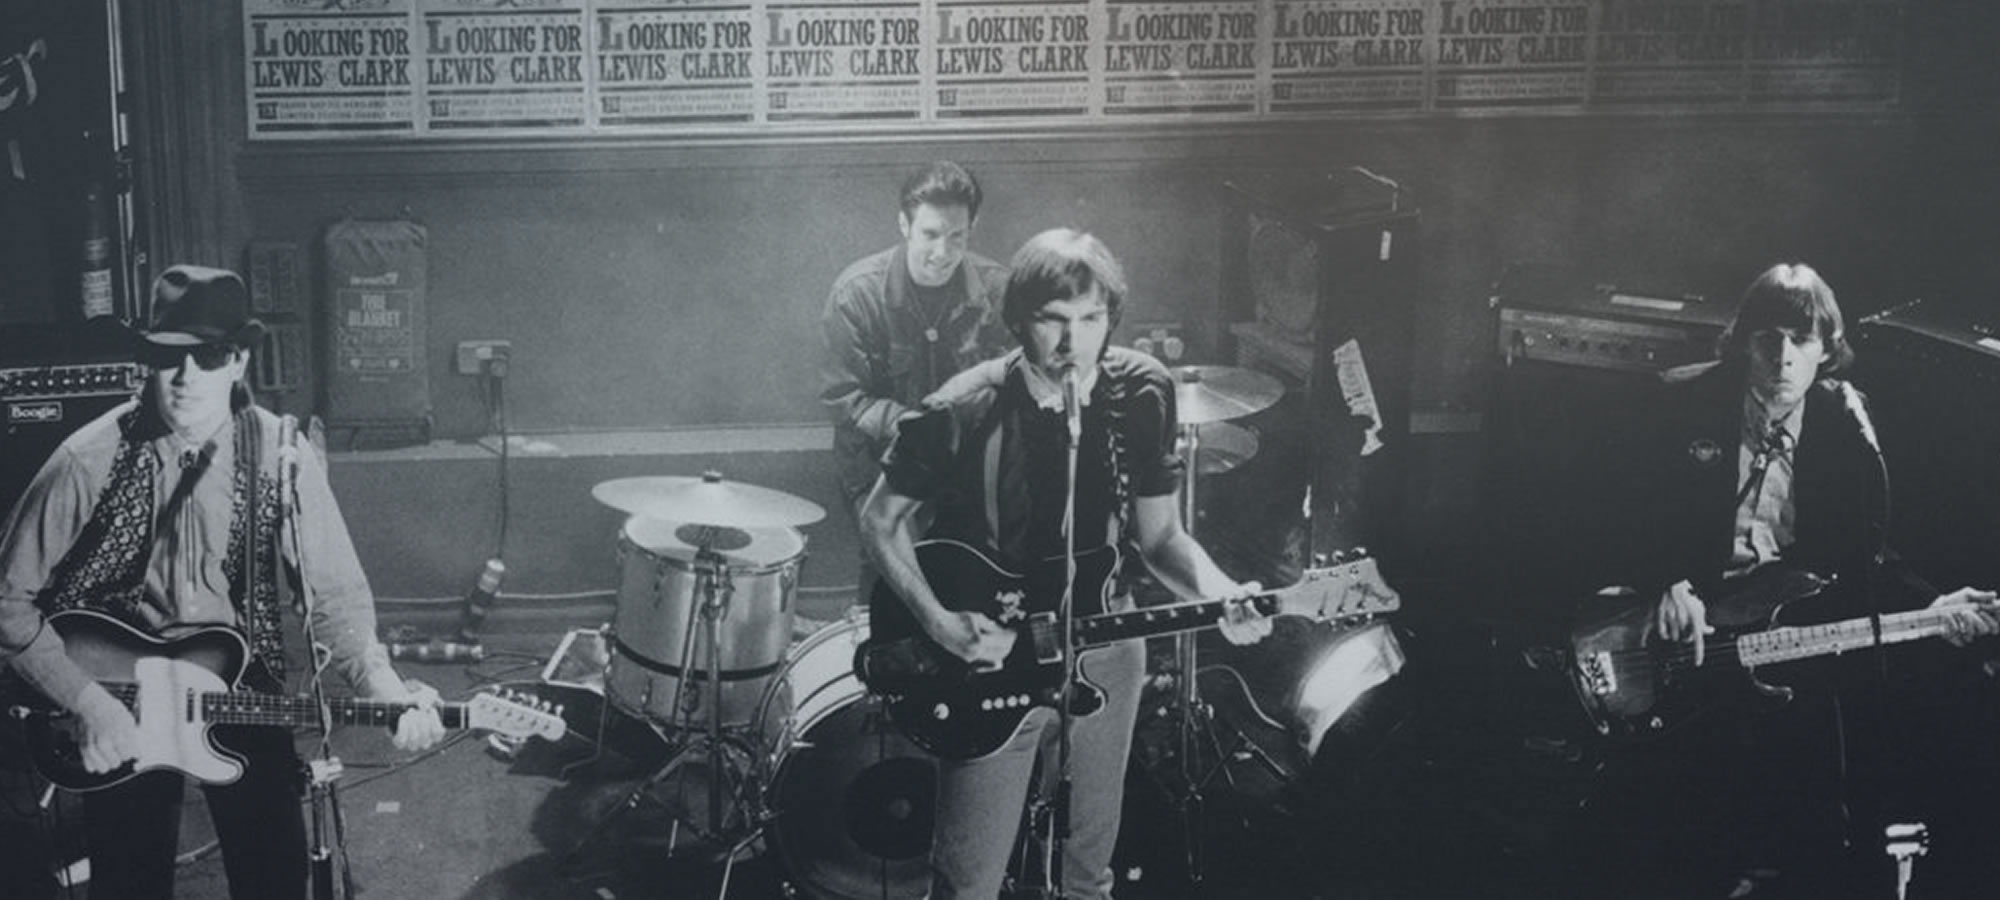 They unwittingly invented Americana<br>but seldom receive credit for it